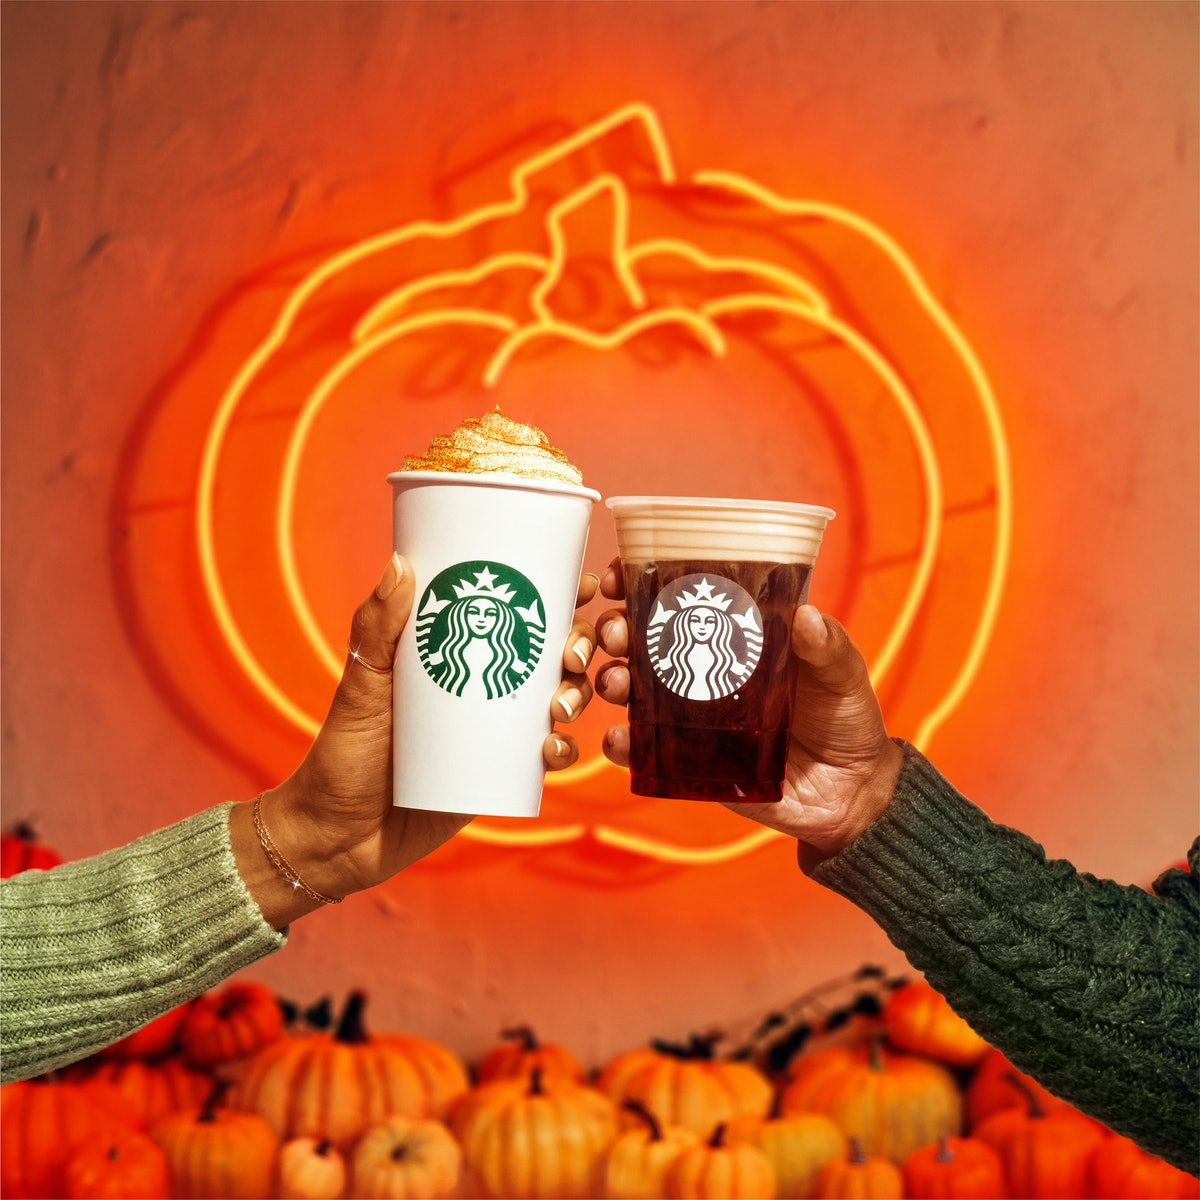 Even if you order non-dairy milk, your Pumpkin Spice Latte at Starbucks won't be vegan.